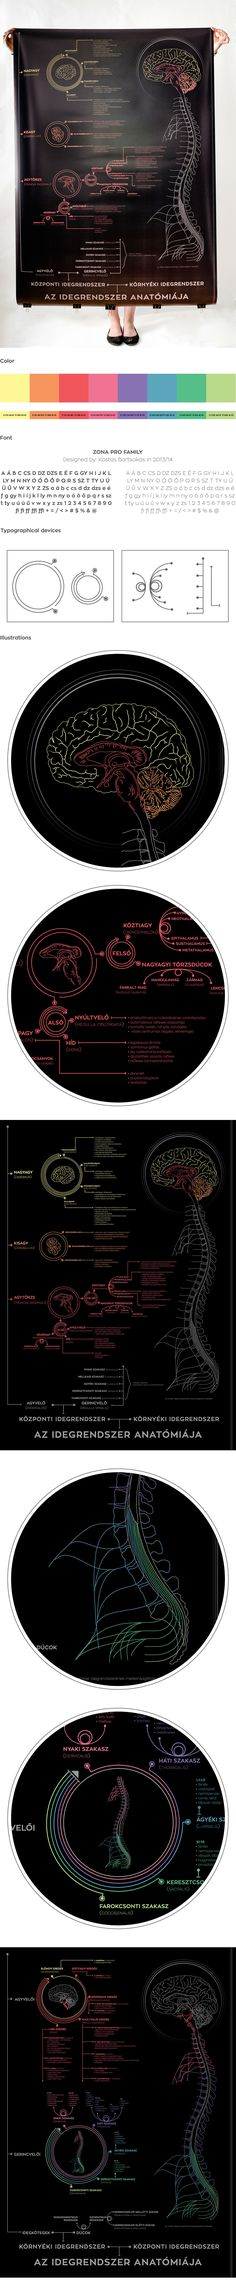 """Check out my @Behance project: """"Infoposter: Anatomy of the nervous system"""" https://www.behance.net/gallery/42611193/Infoposter-Anatomy-of-the-nervous-system"""